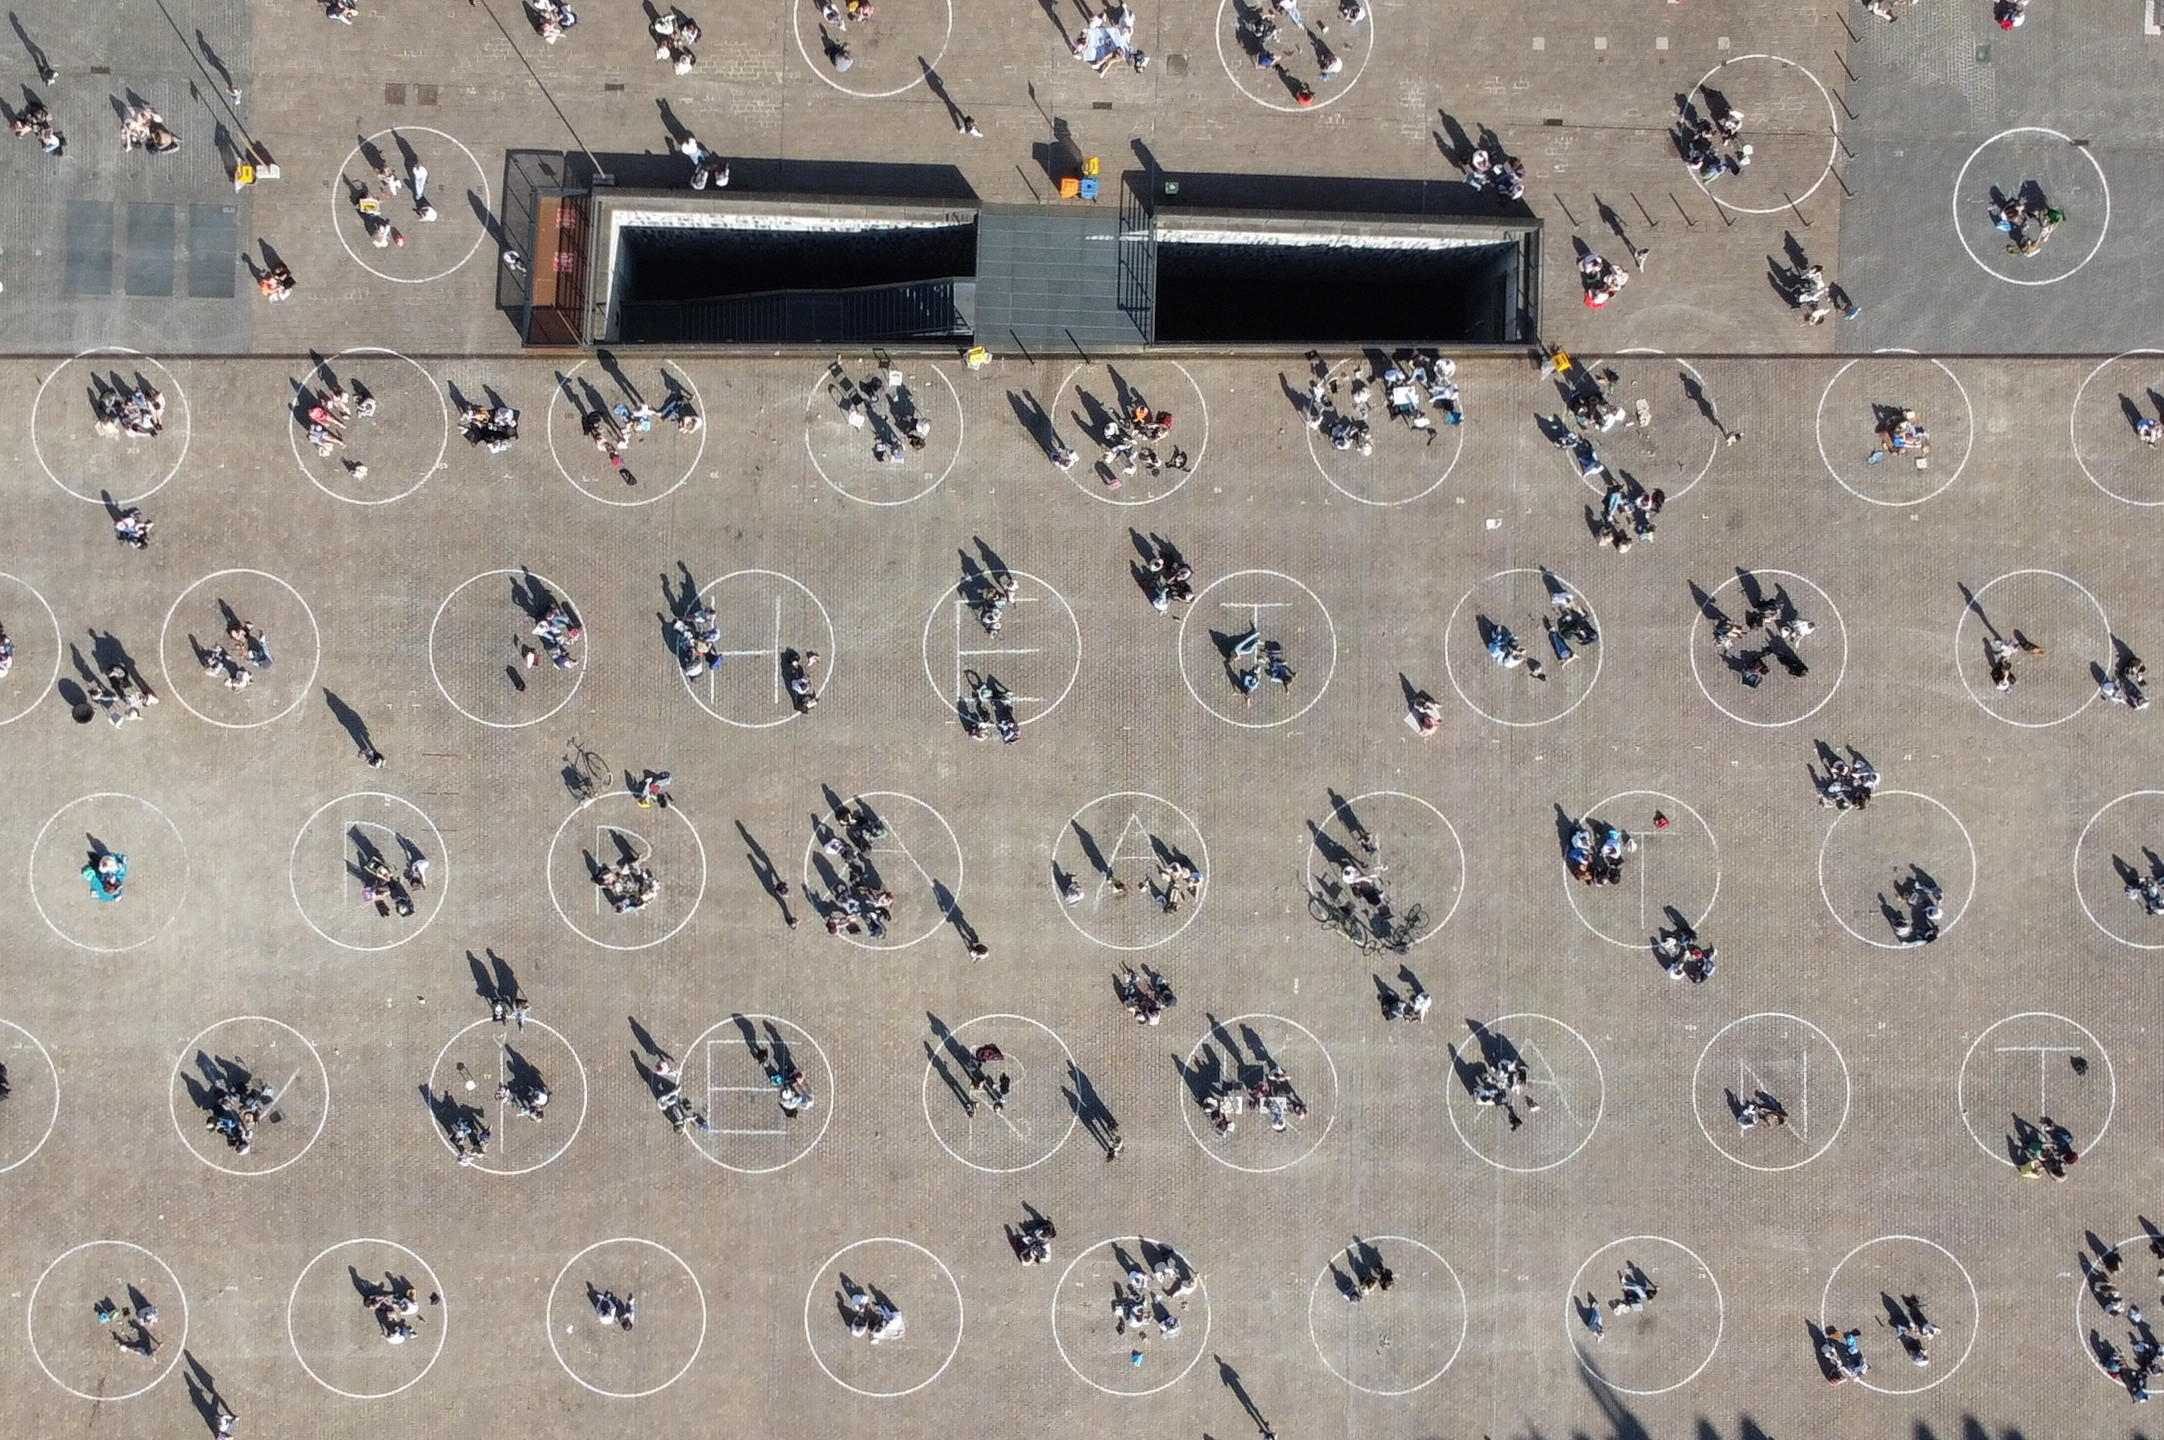 People relax inside circles painted by local authorities at Saint Peter's Square (Sint-Pietersplein) to encourage respect in social distancing amid the coronavirus (COVID-19) outbreak, in Ghent, Belgium March 29, 2021. Picture taken with a drone on March 29, 2021. REUTERS/Bart Biesemans - RC2PLM9SHZ2I